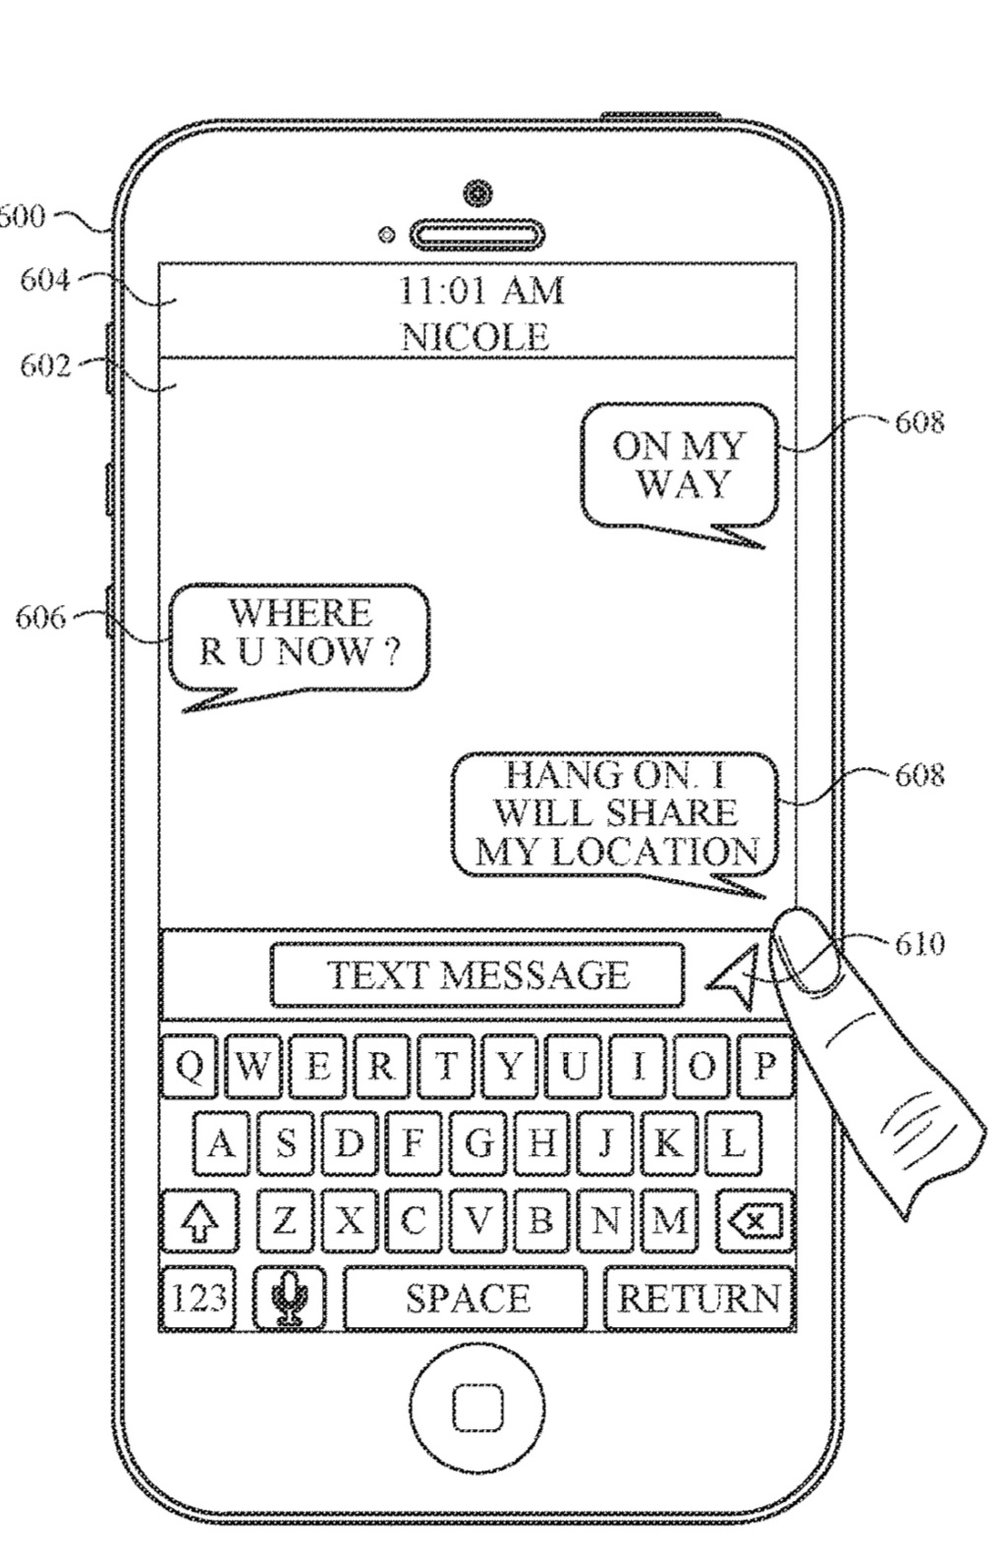 Messages patent.jpg